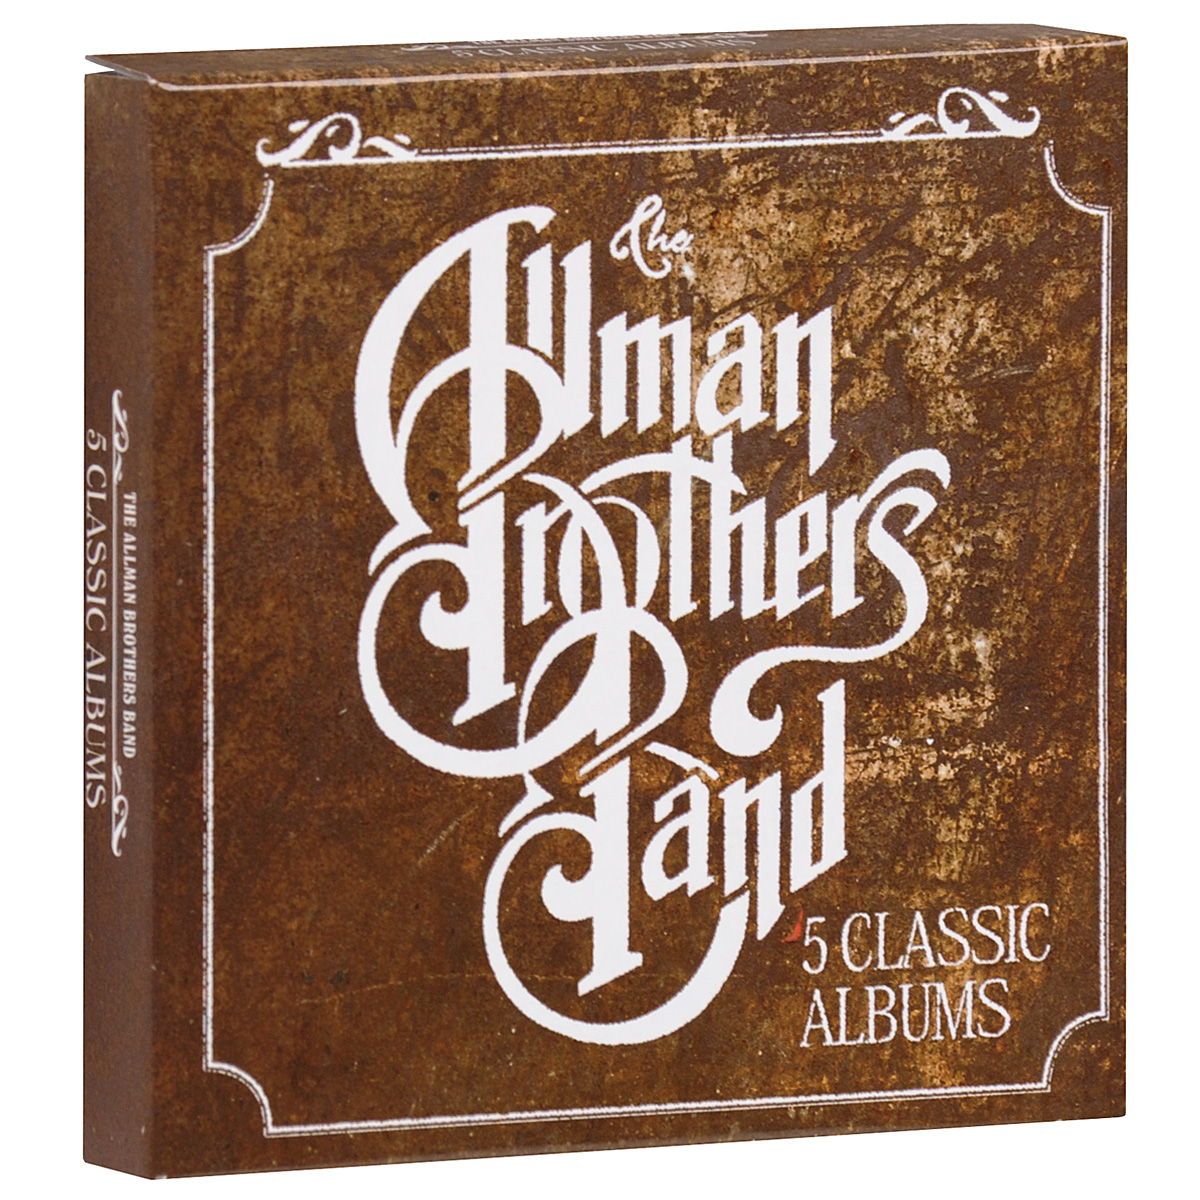 The Allman Brothers Band,The Allman Brothers Band The Allman Brothers Band. 5 Classic Albums (5 CD) goorin brothers 103 5880